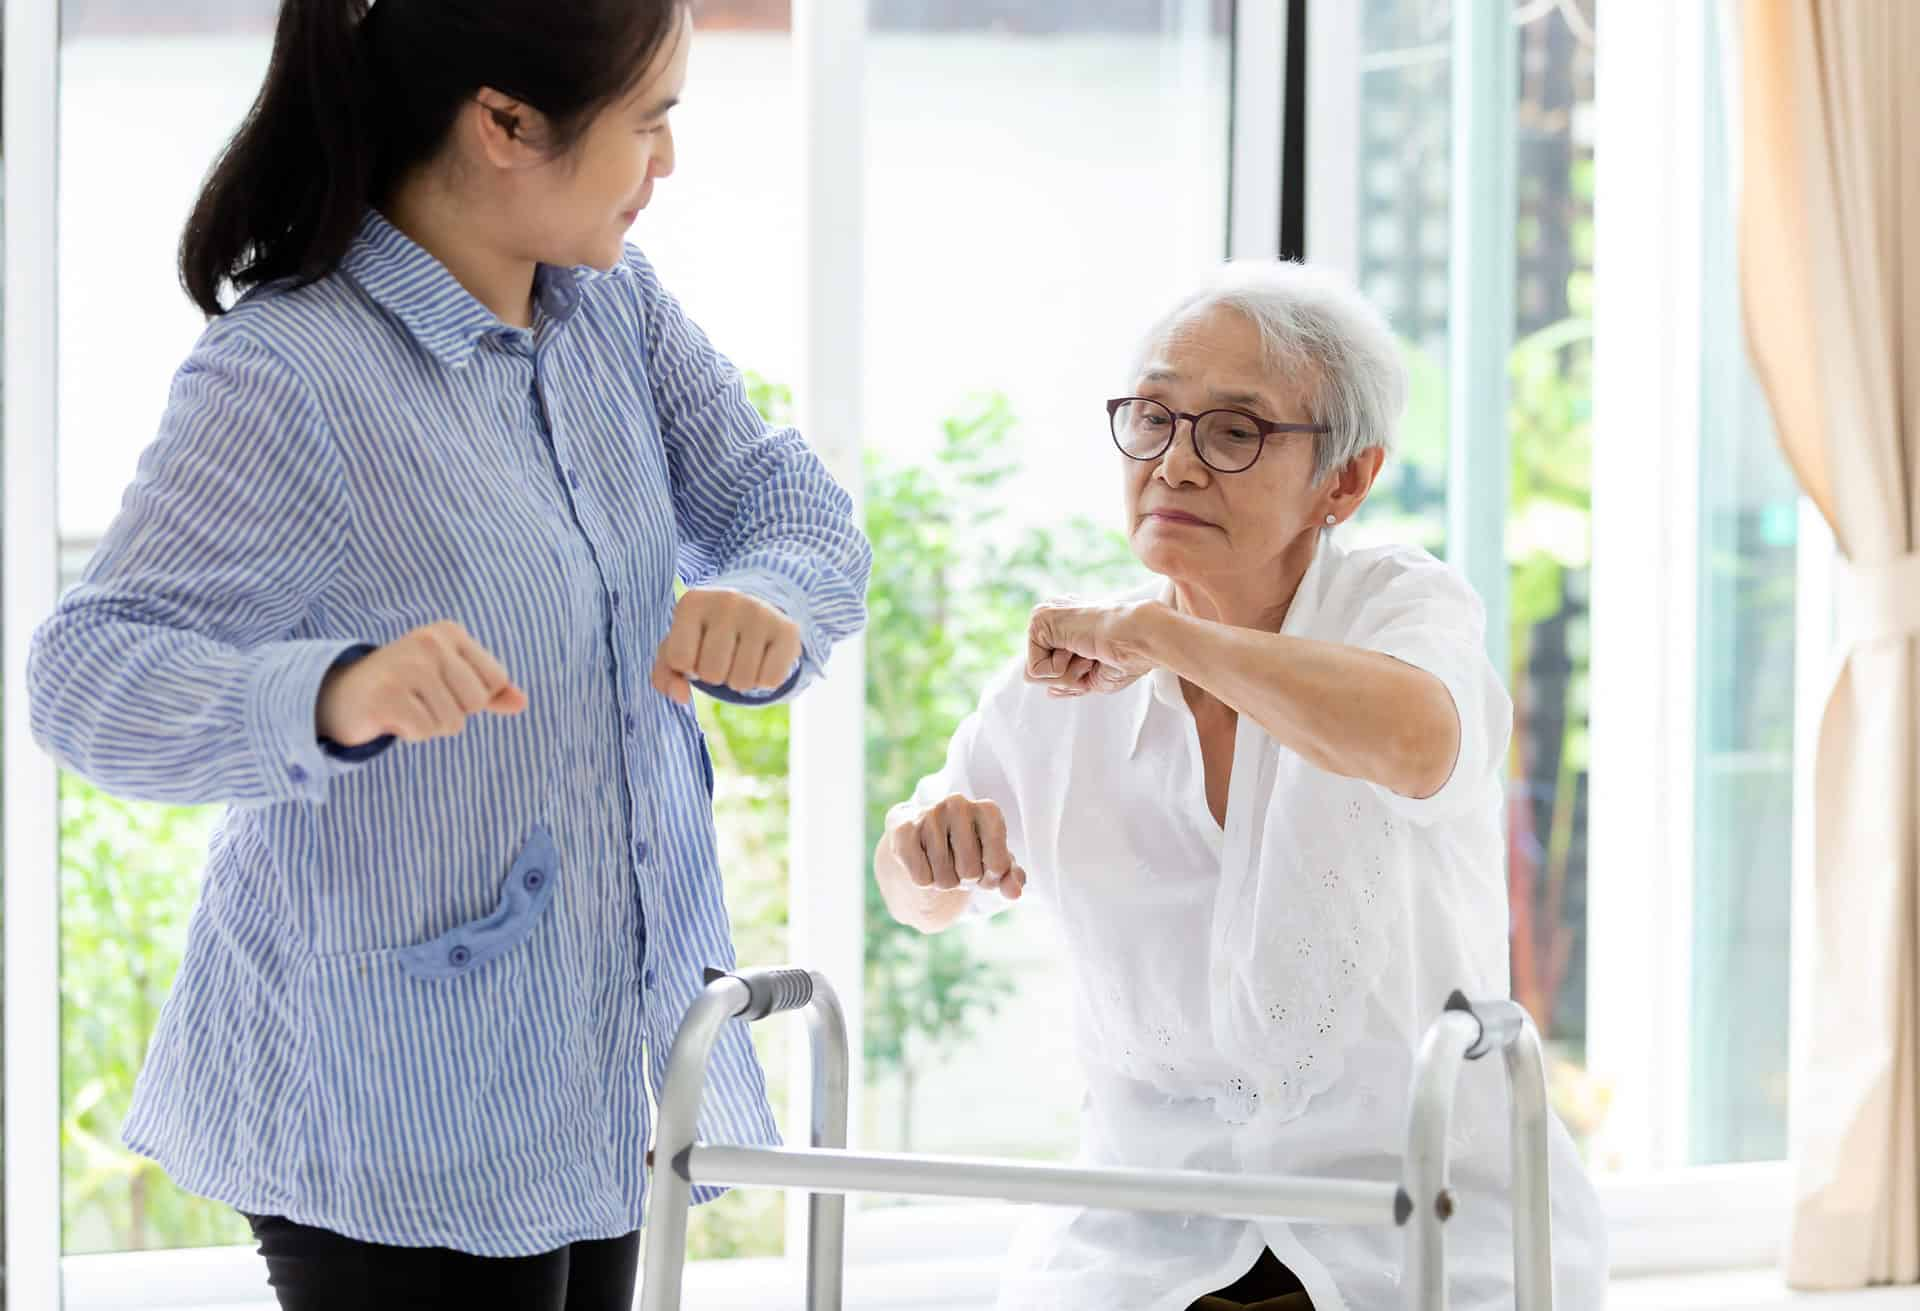 Elderly woman doing rehabilitation exercise with trainer